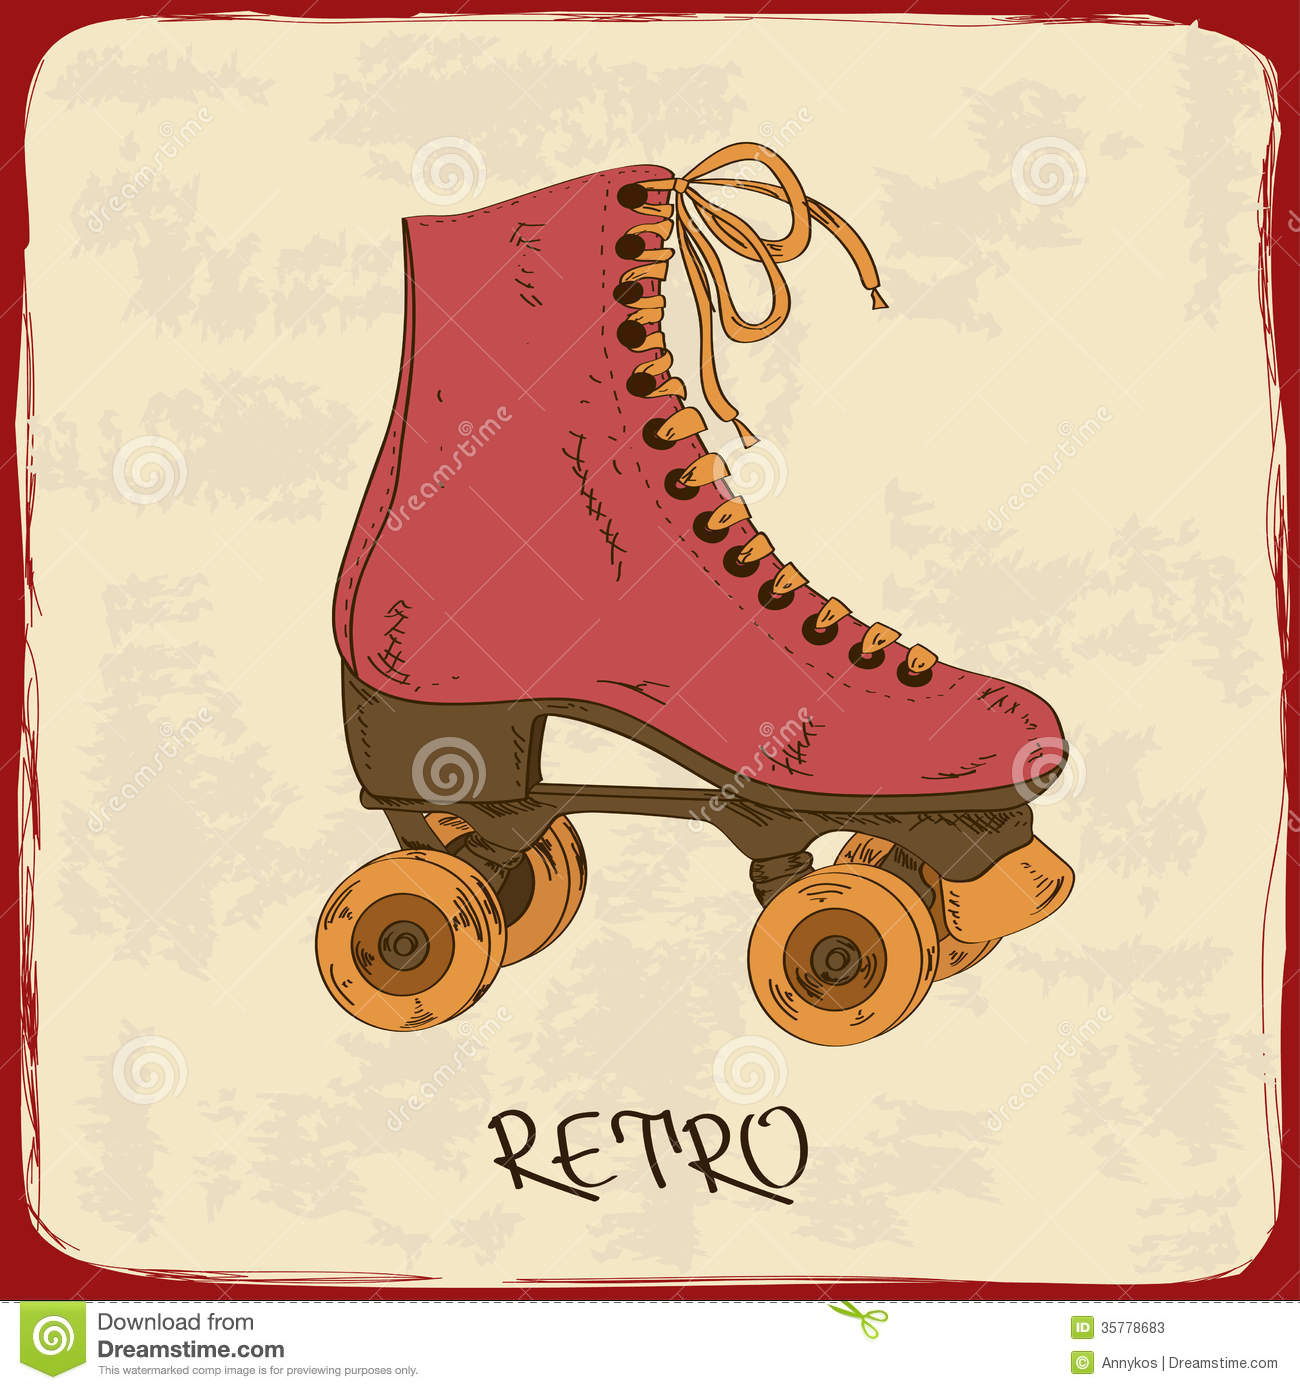 Illustration with retro roller skates stock photos image for Imagenes retro vintage